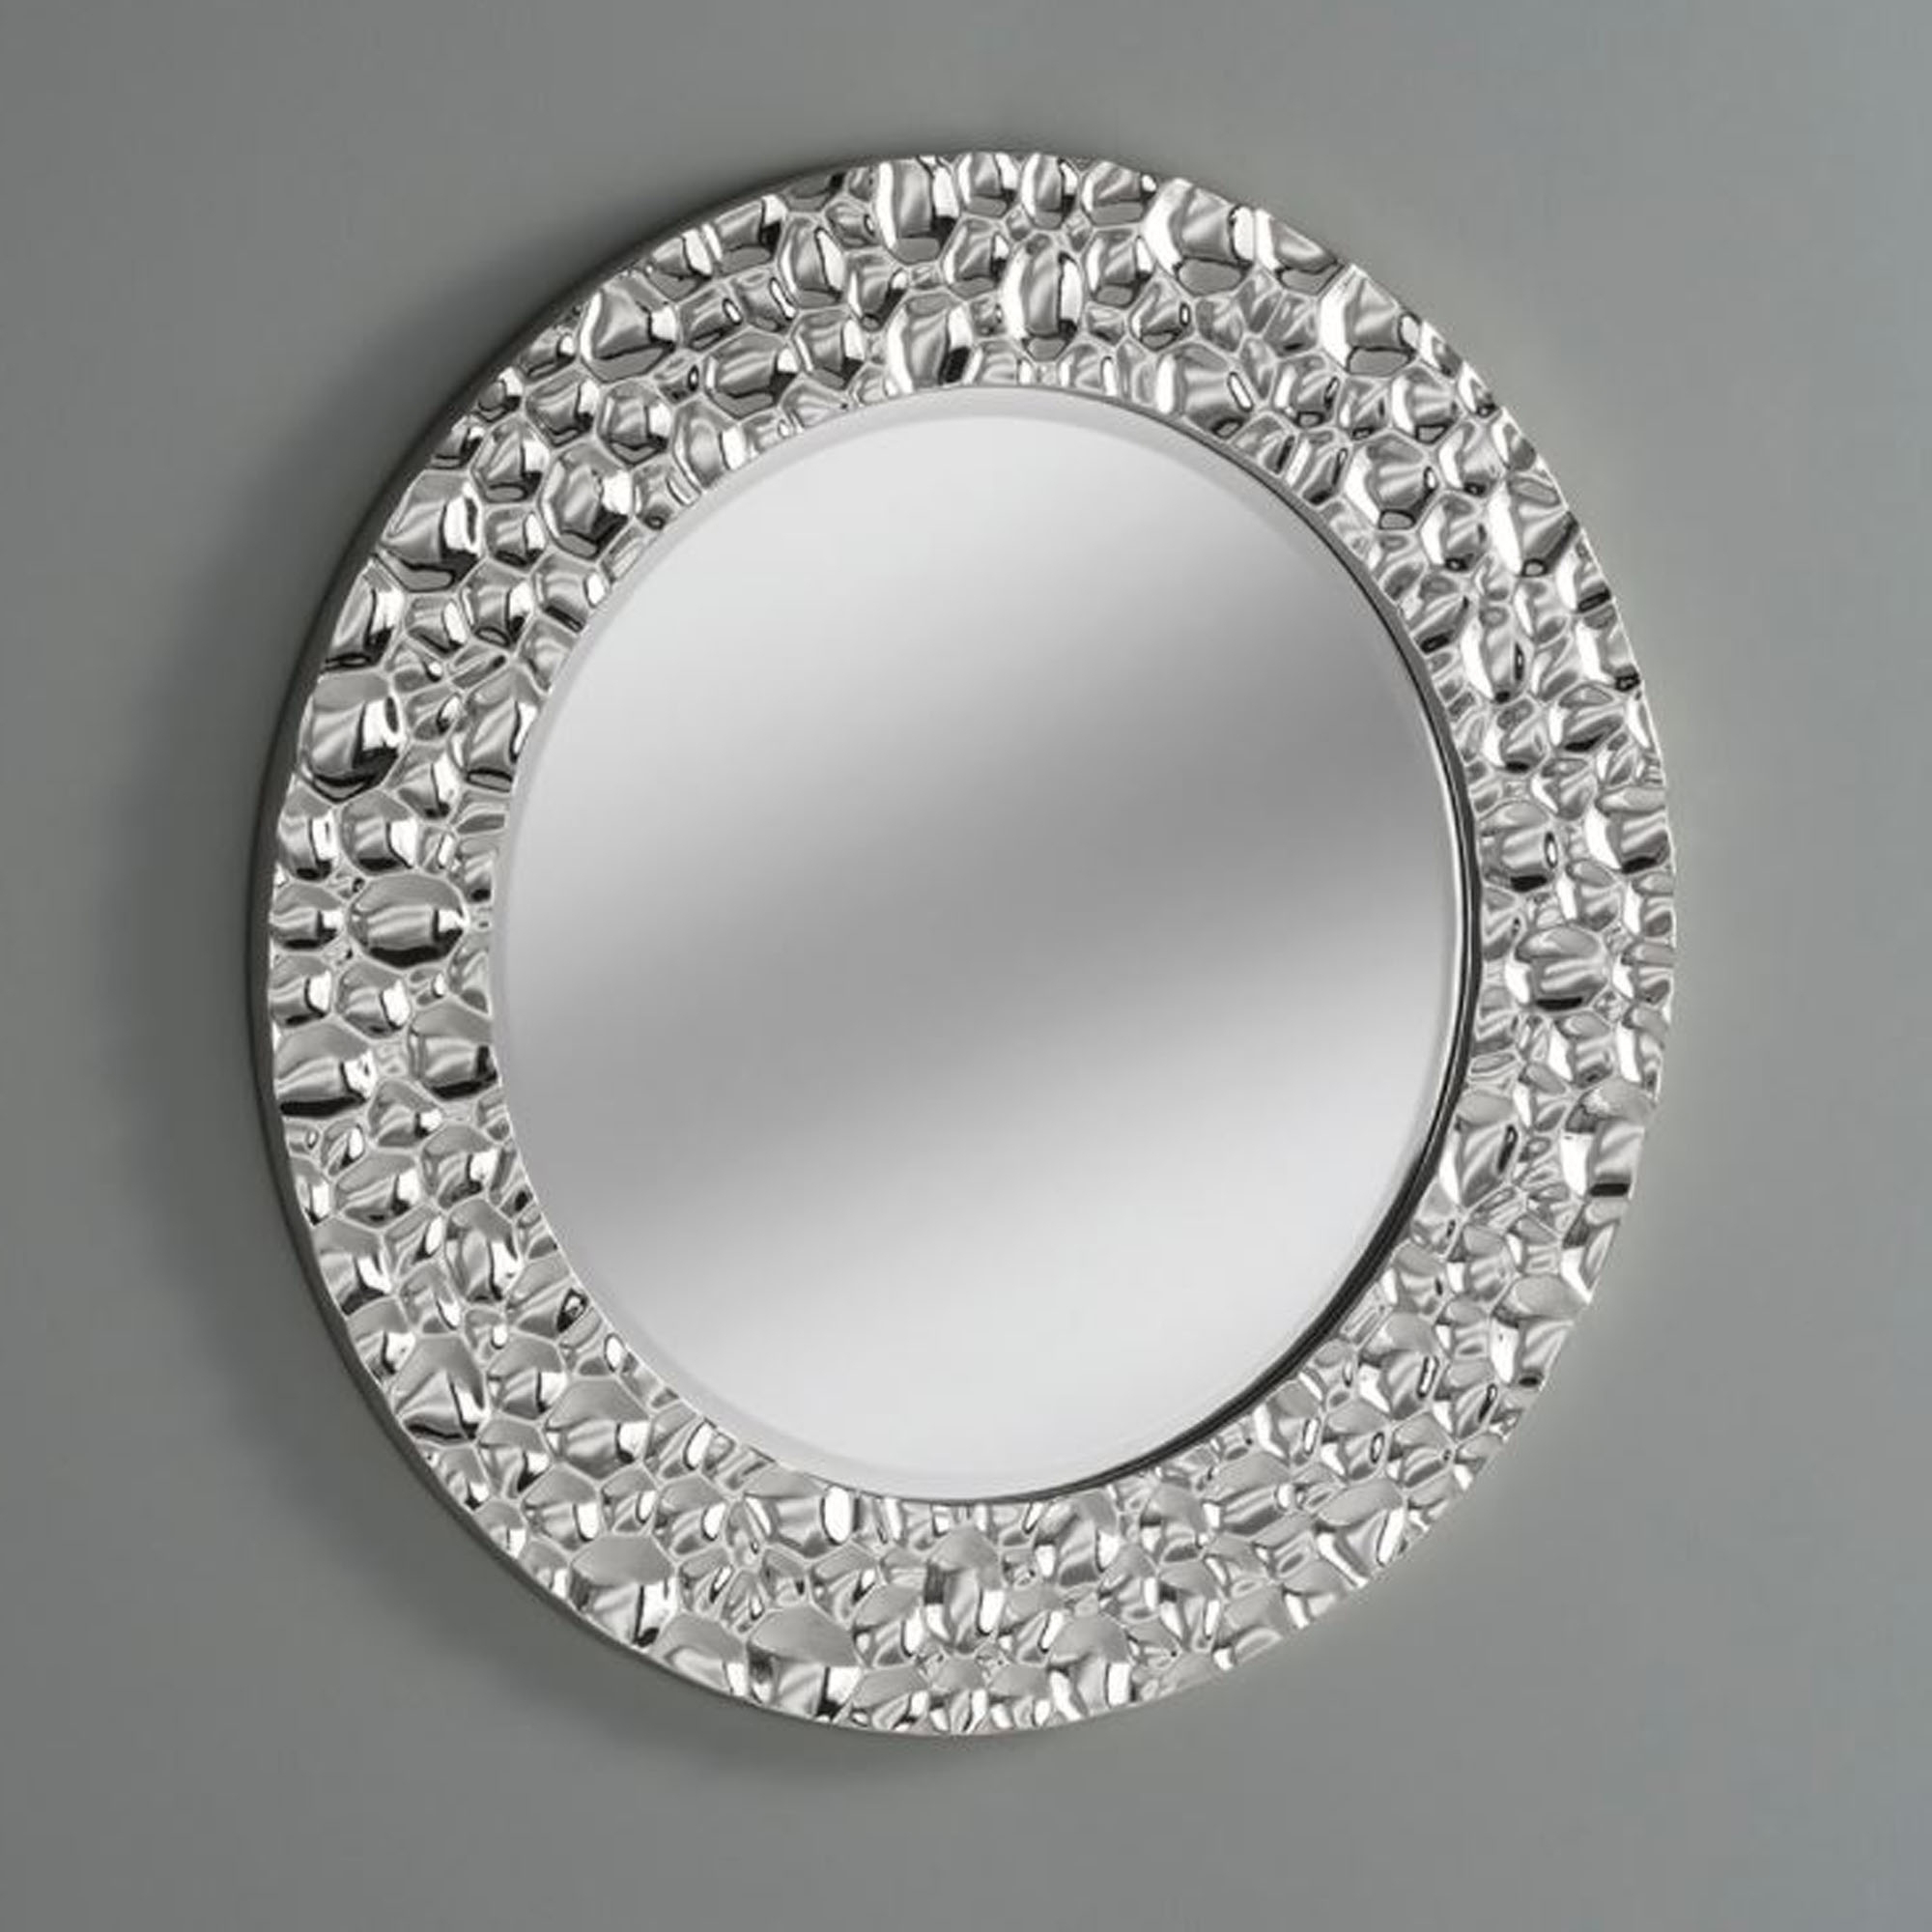 Circular Wall Mirrors In Popular Bubble Effect Chrome Silver Circle Wall Mirror (View 4 of 20)